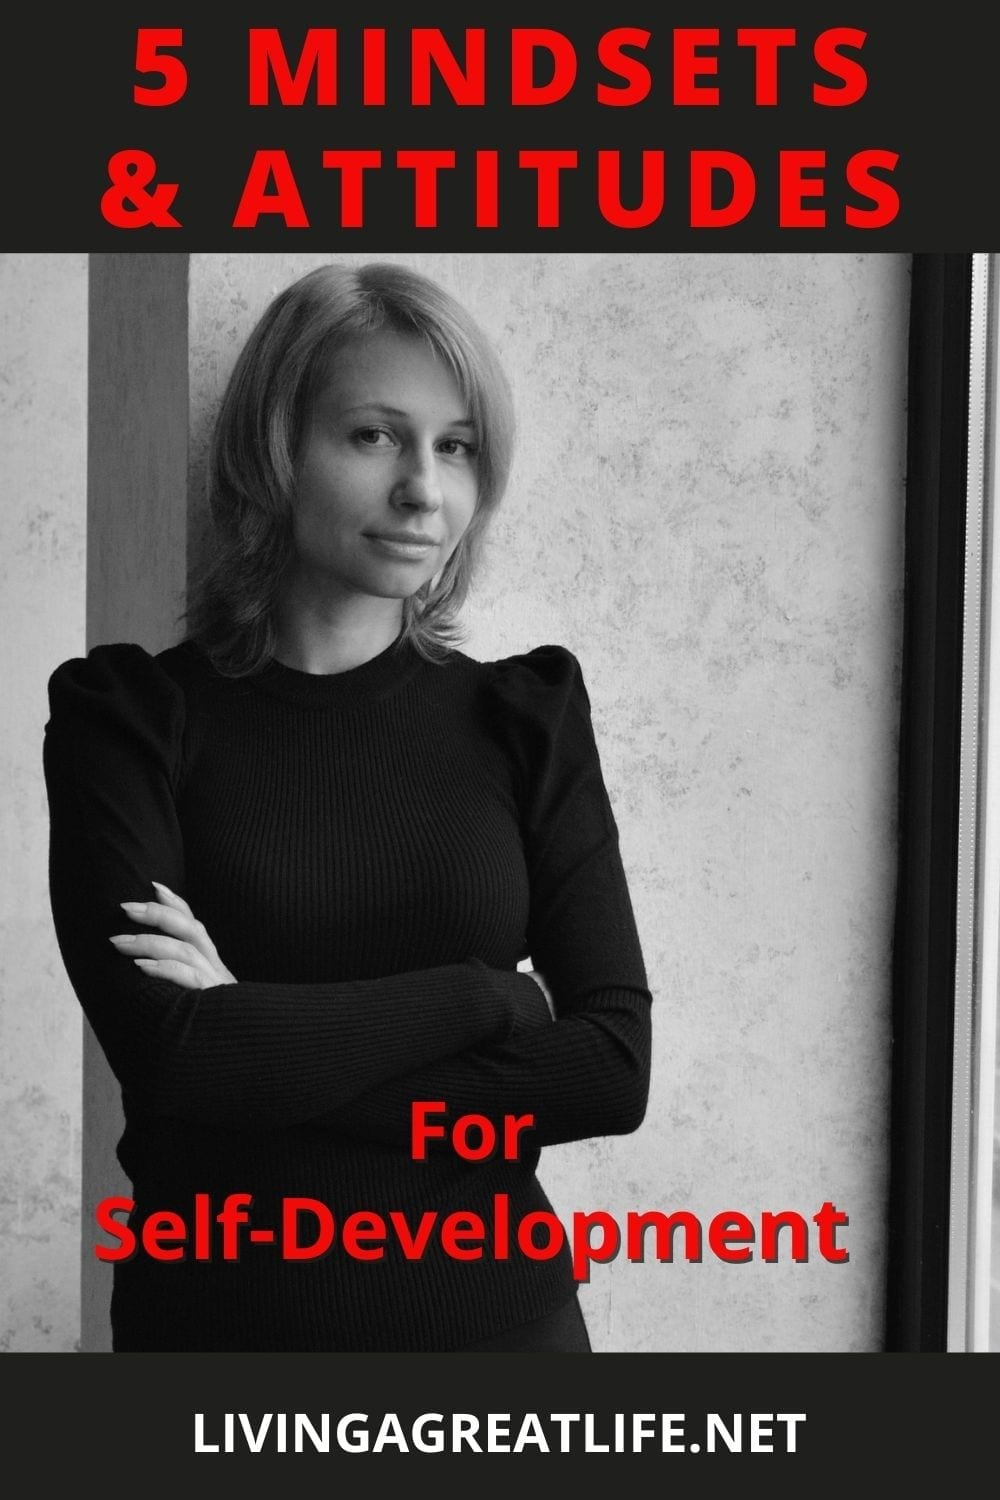 5 Simple Self-Improvement Tips For Personal Development